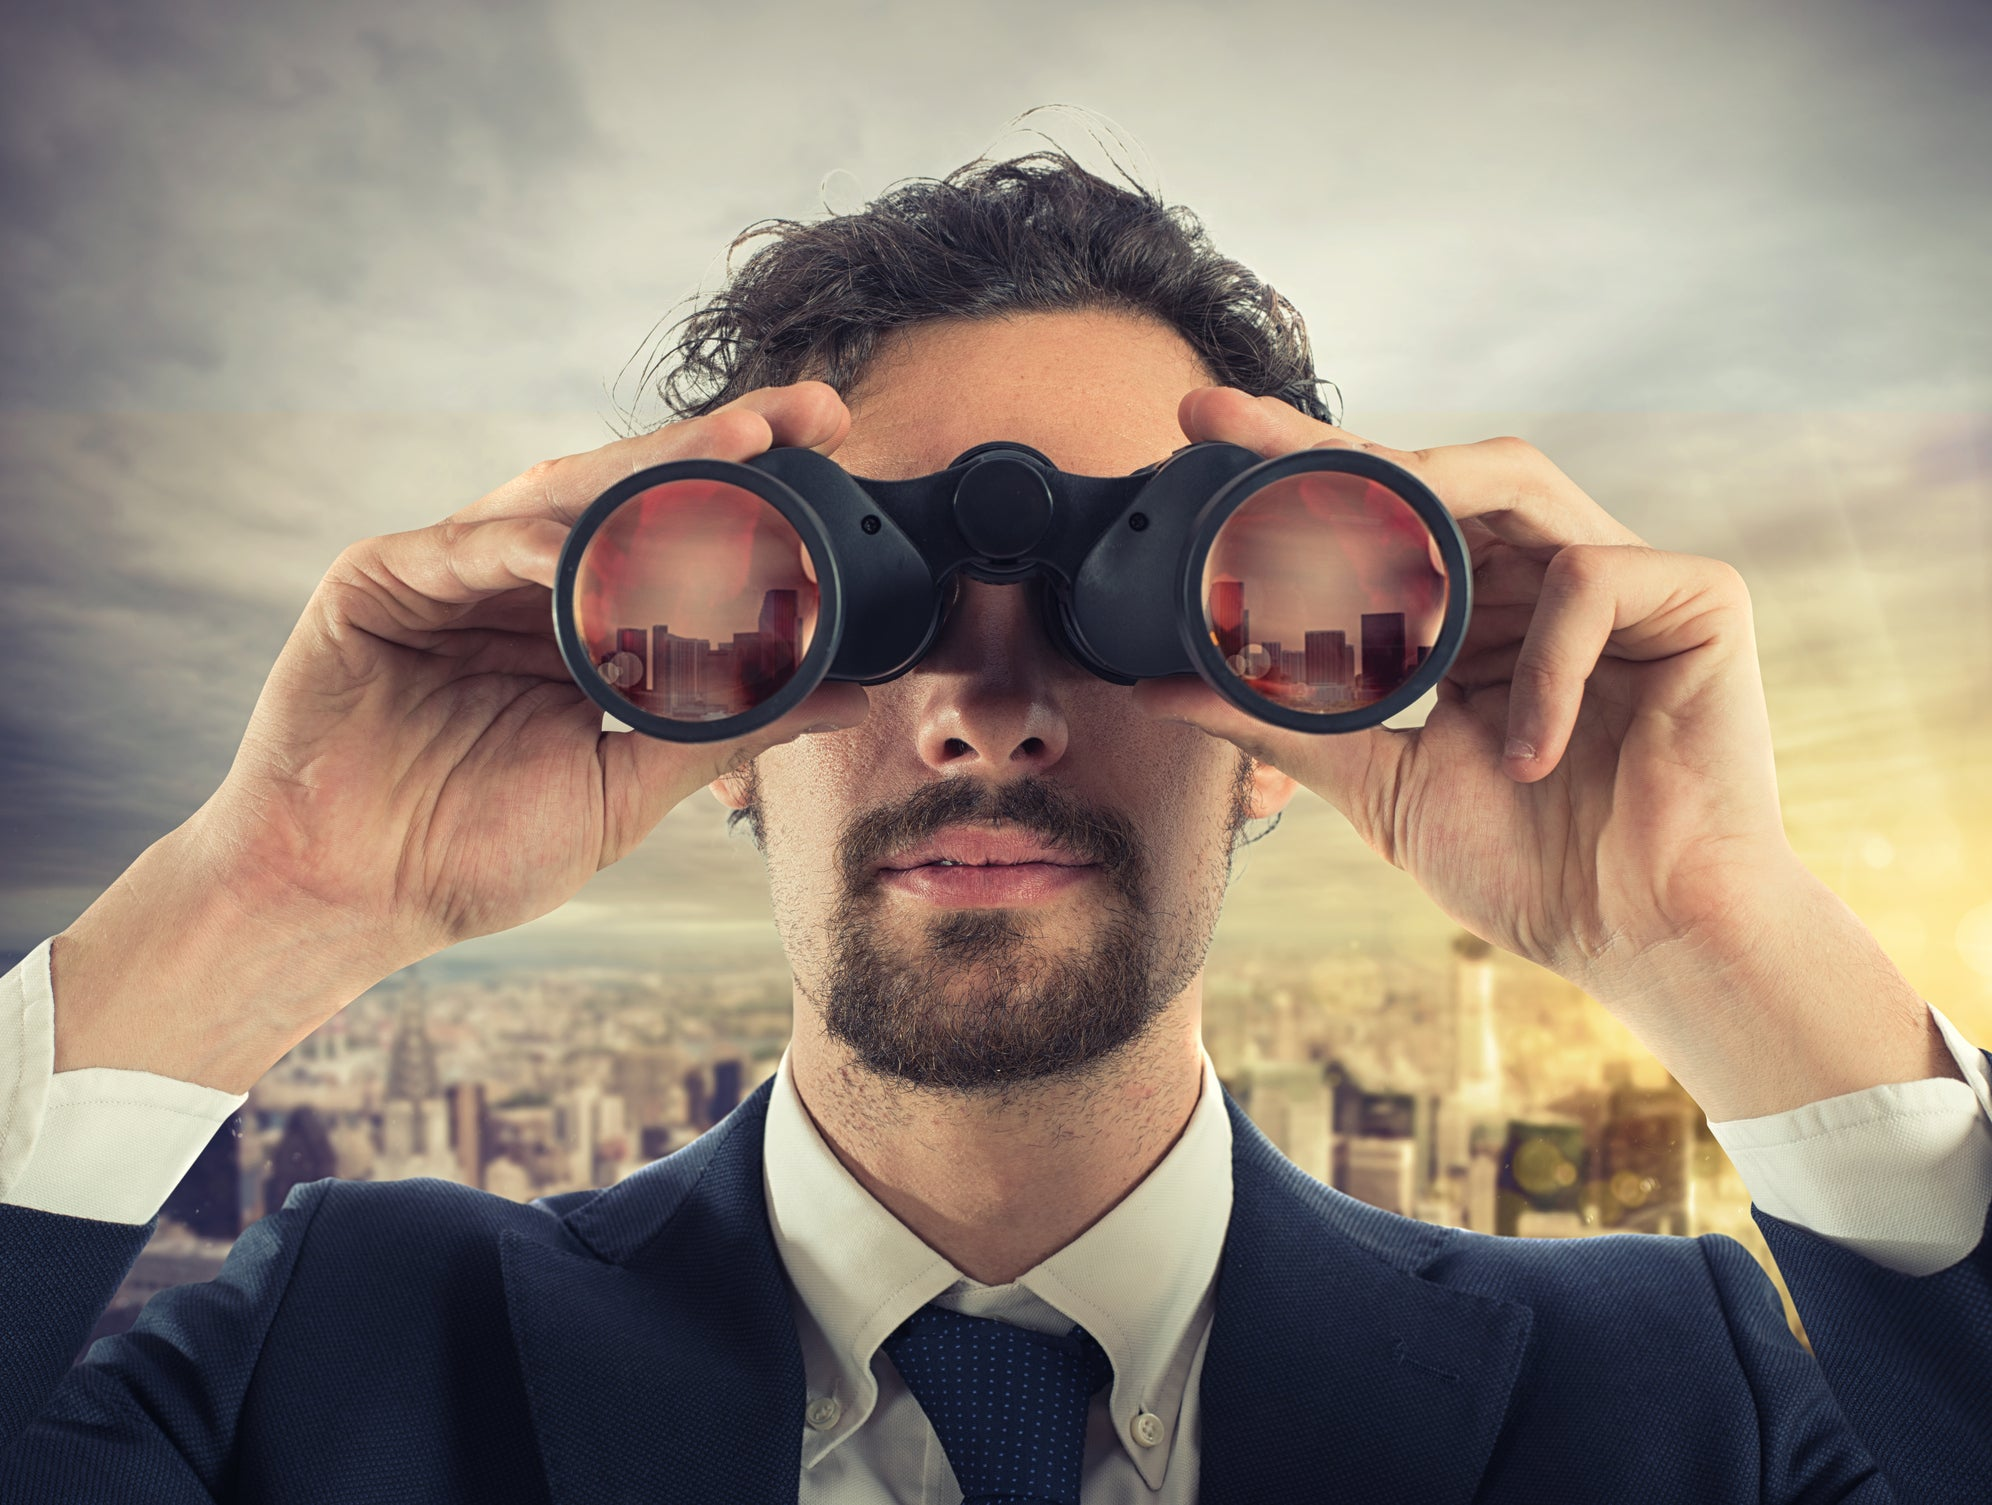 Man in suit looking through binoculars with cityscape in background.